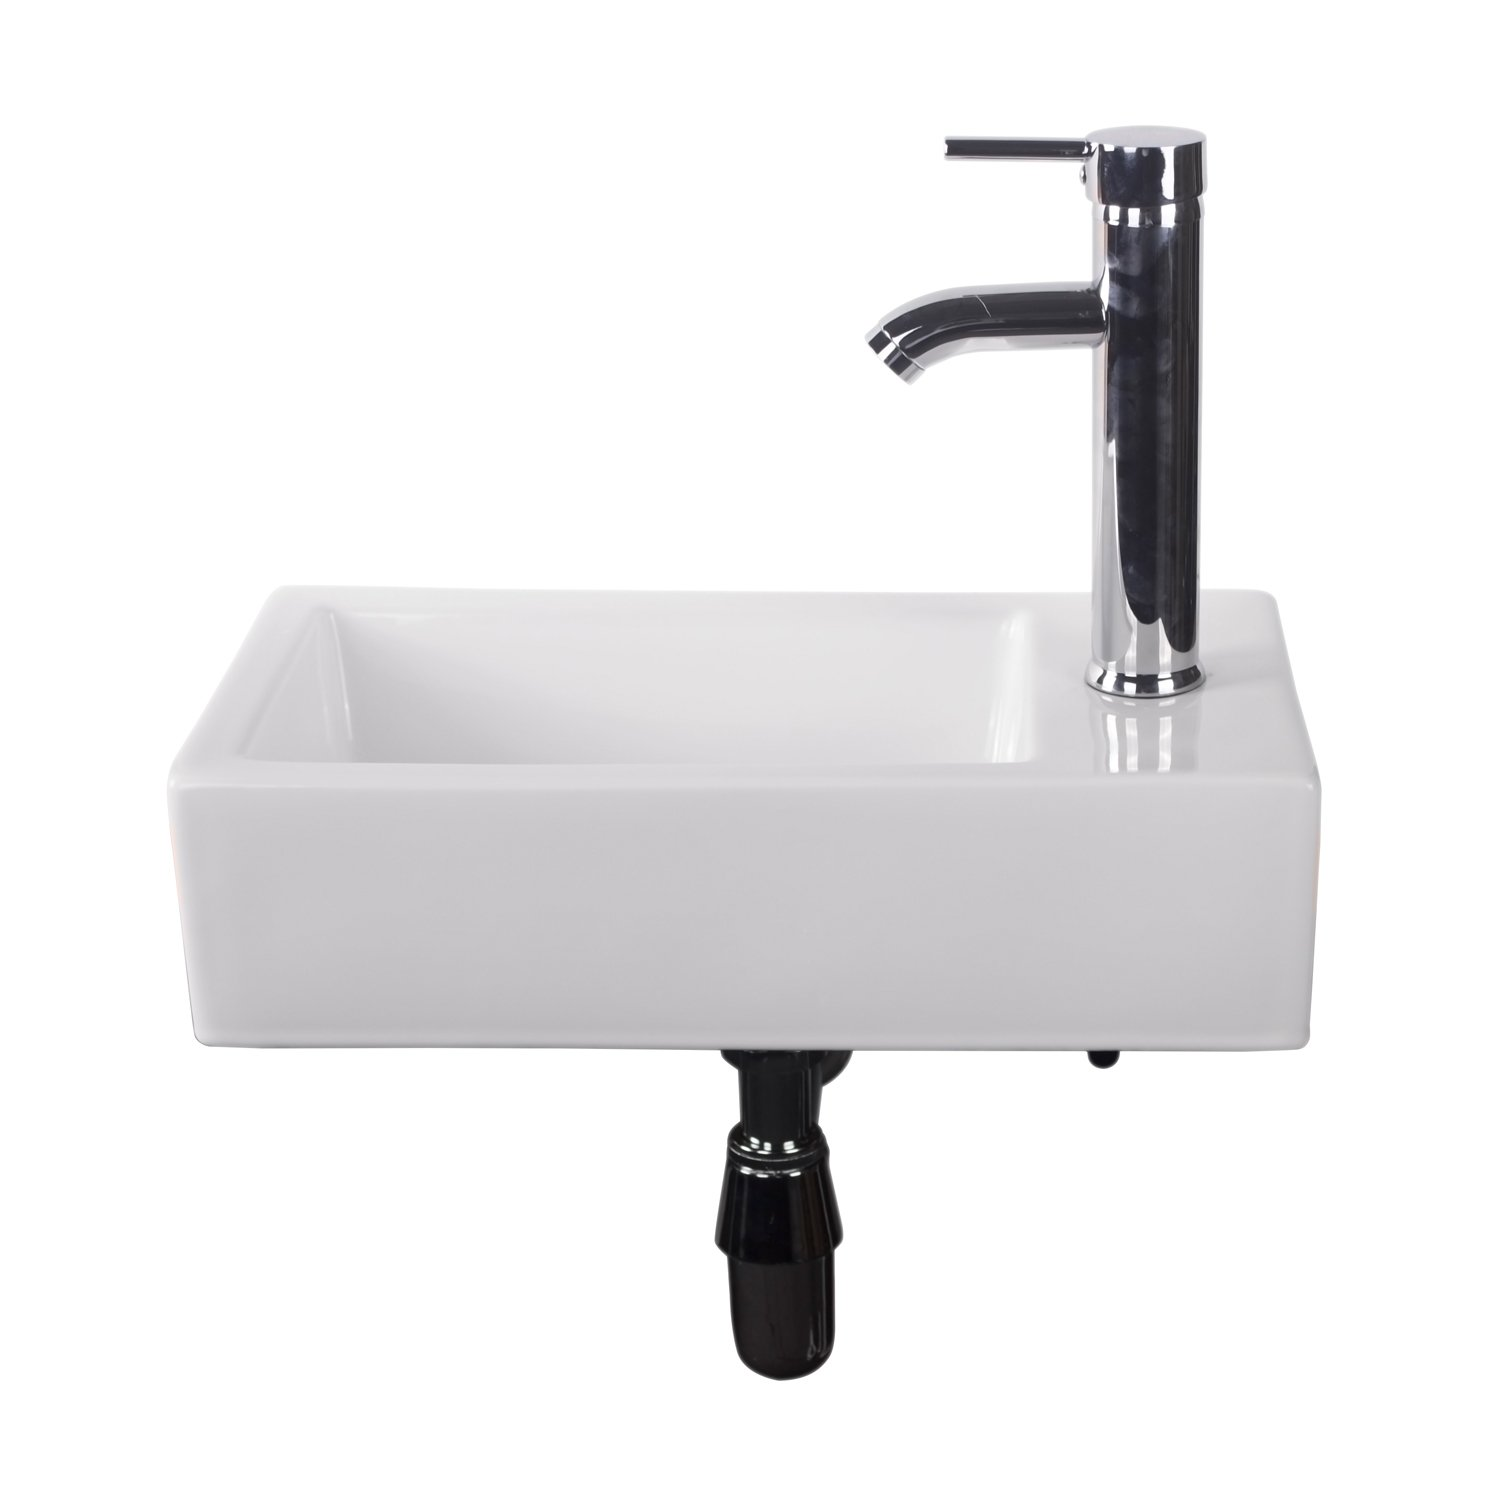 Walcut USBR1031 Bathroom Wall Mount Rectangle White Porcelain Ceramic Vessel Sink & Chrome Faucet Combo by WALCUT